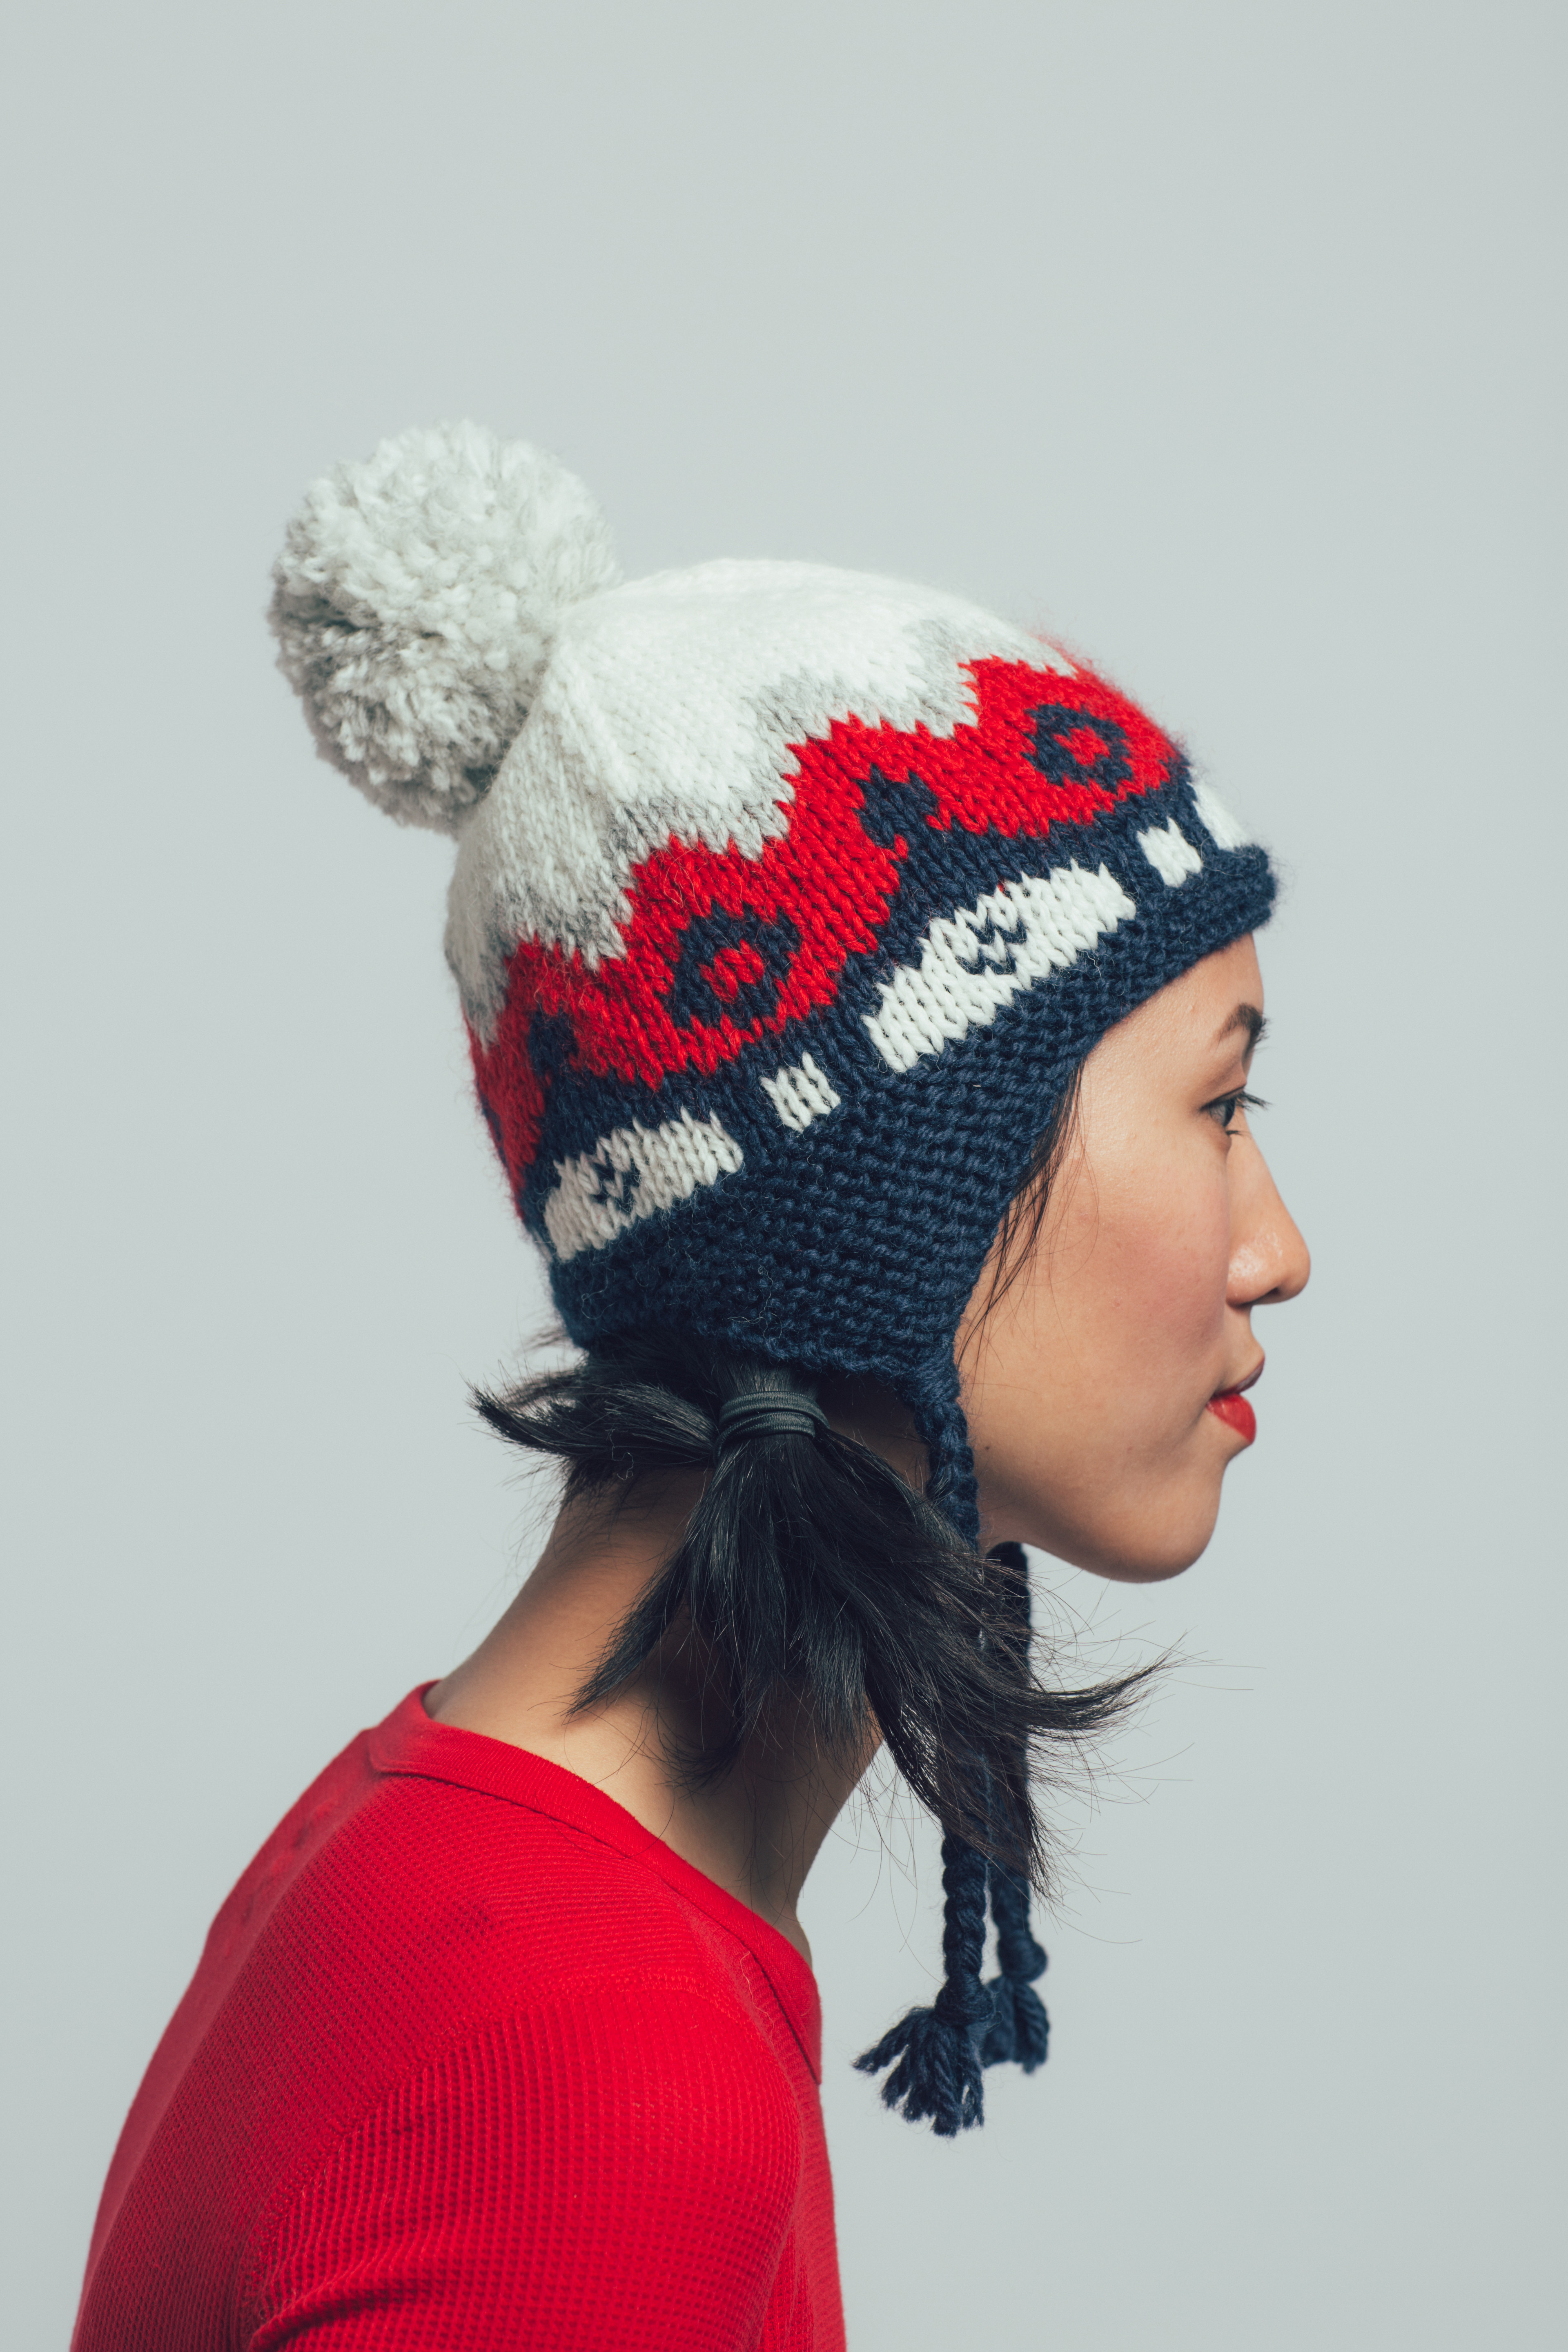 Snowball Cap knitting pattern by Jesie Ostermiller from knitscene Winter 2016